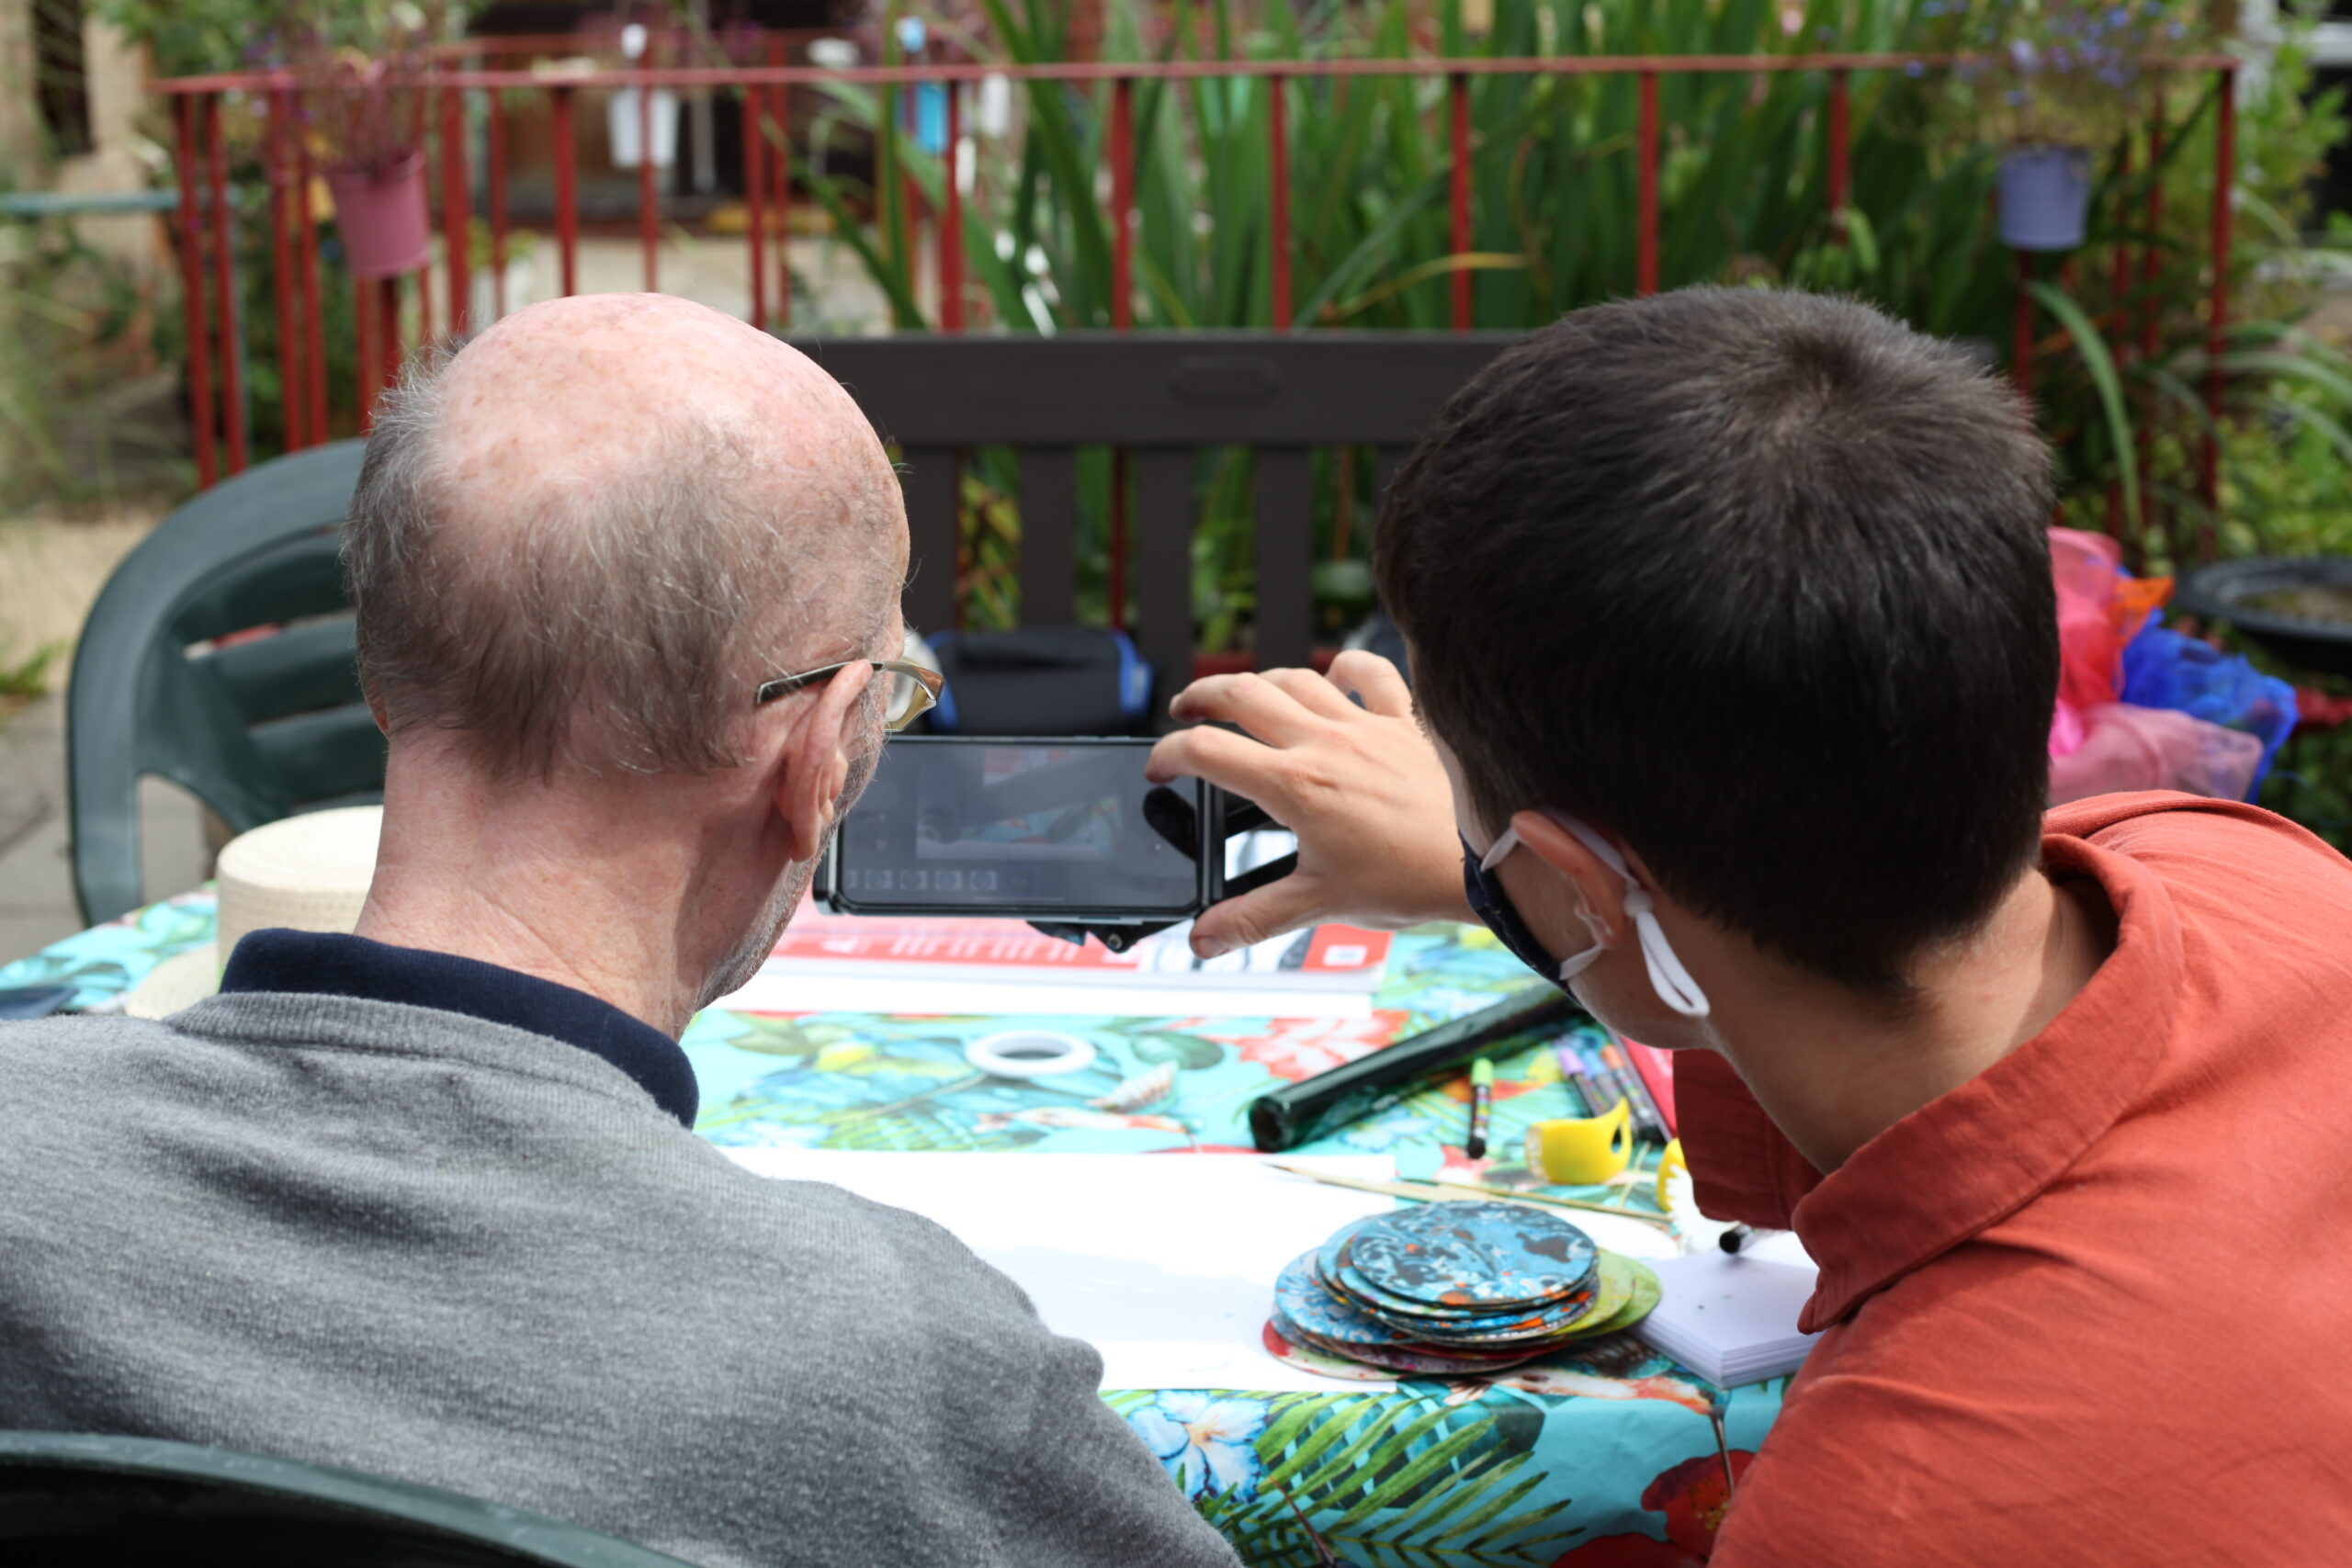 Photo shows two people looking at a mobile phone screen as they take a picture of an artwork they have just made. On the left is an older man with his back to us, he is wearing glasses and a grey top, on the right is a younger man with dark hair, he is holding the phone and is wearing an orange top. In front of them is a table covered with a colourful table cloth and art materials.Essex 2021 Magic Me Workshop 1 Quenby_Photo Credit Georgia Akbar & Lily Ash Sakula